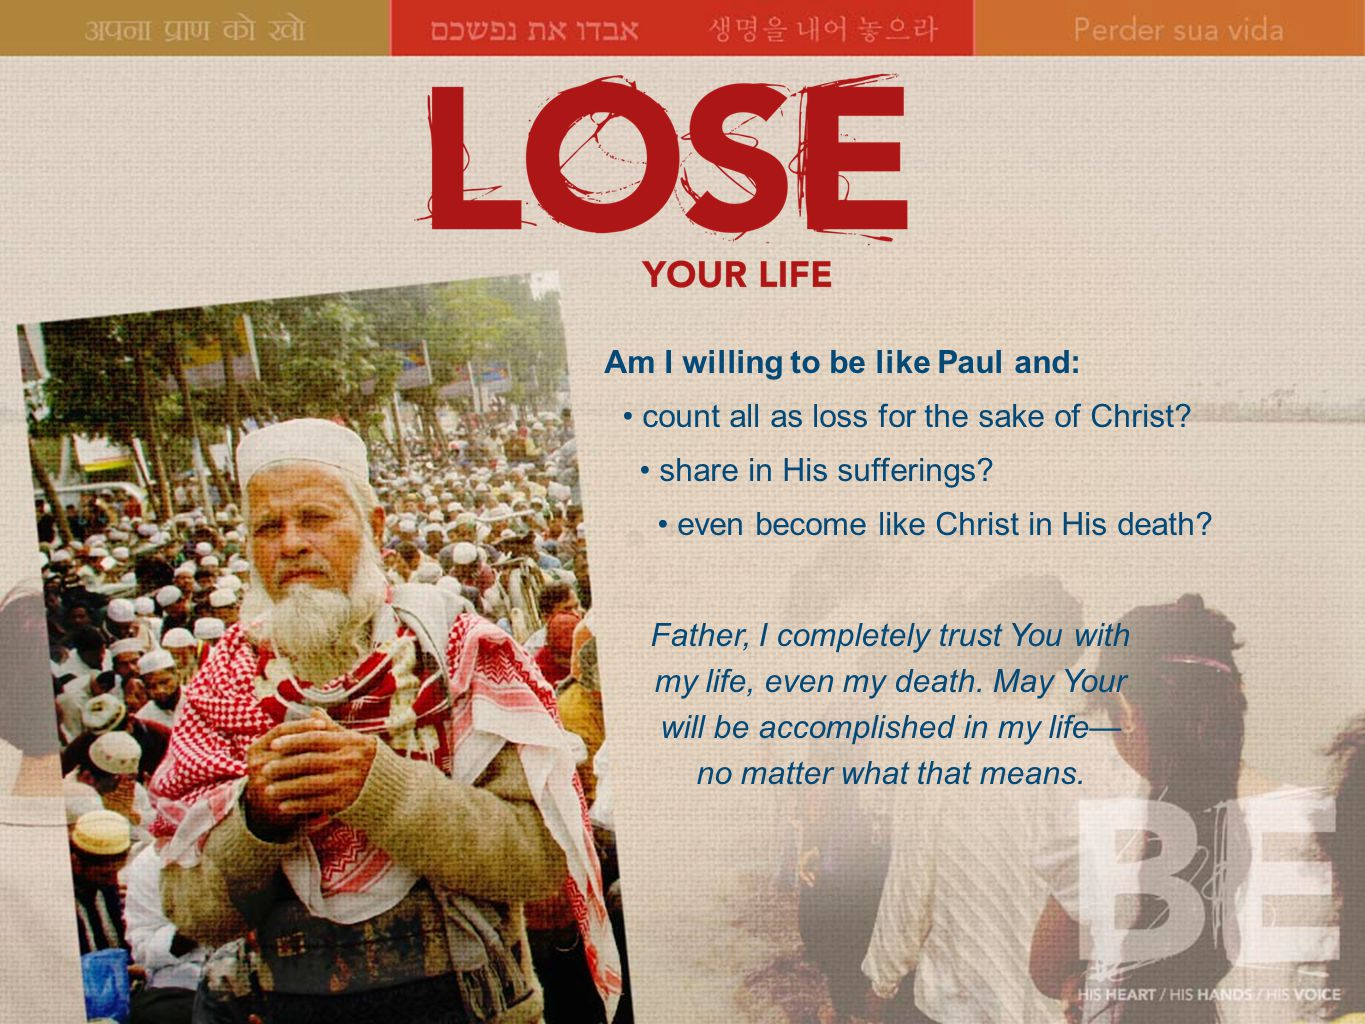 Am I willing to be like Paul and: count all as loss for the sake of Christ.